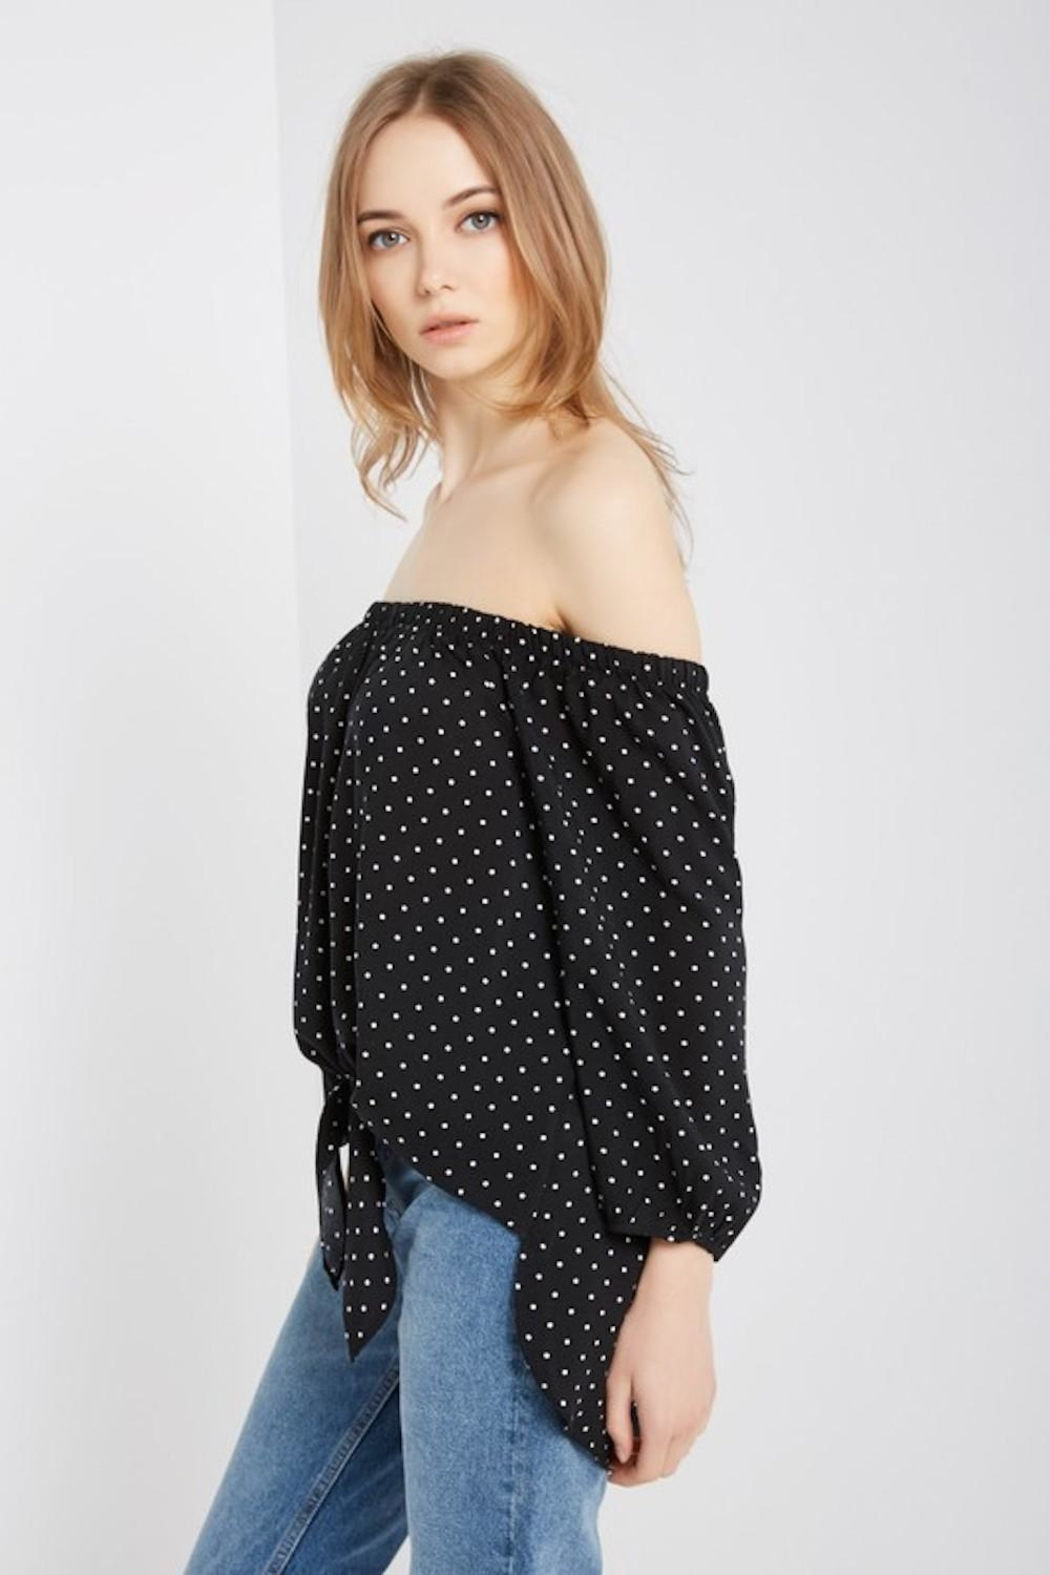 8298302f04 Soprano Black Polka-Dot Top from Los Angeles by AndyLiz Boutique ...